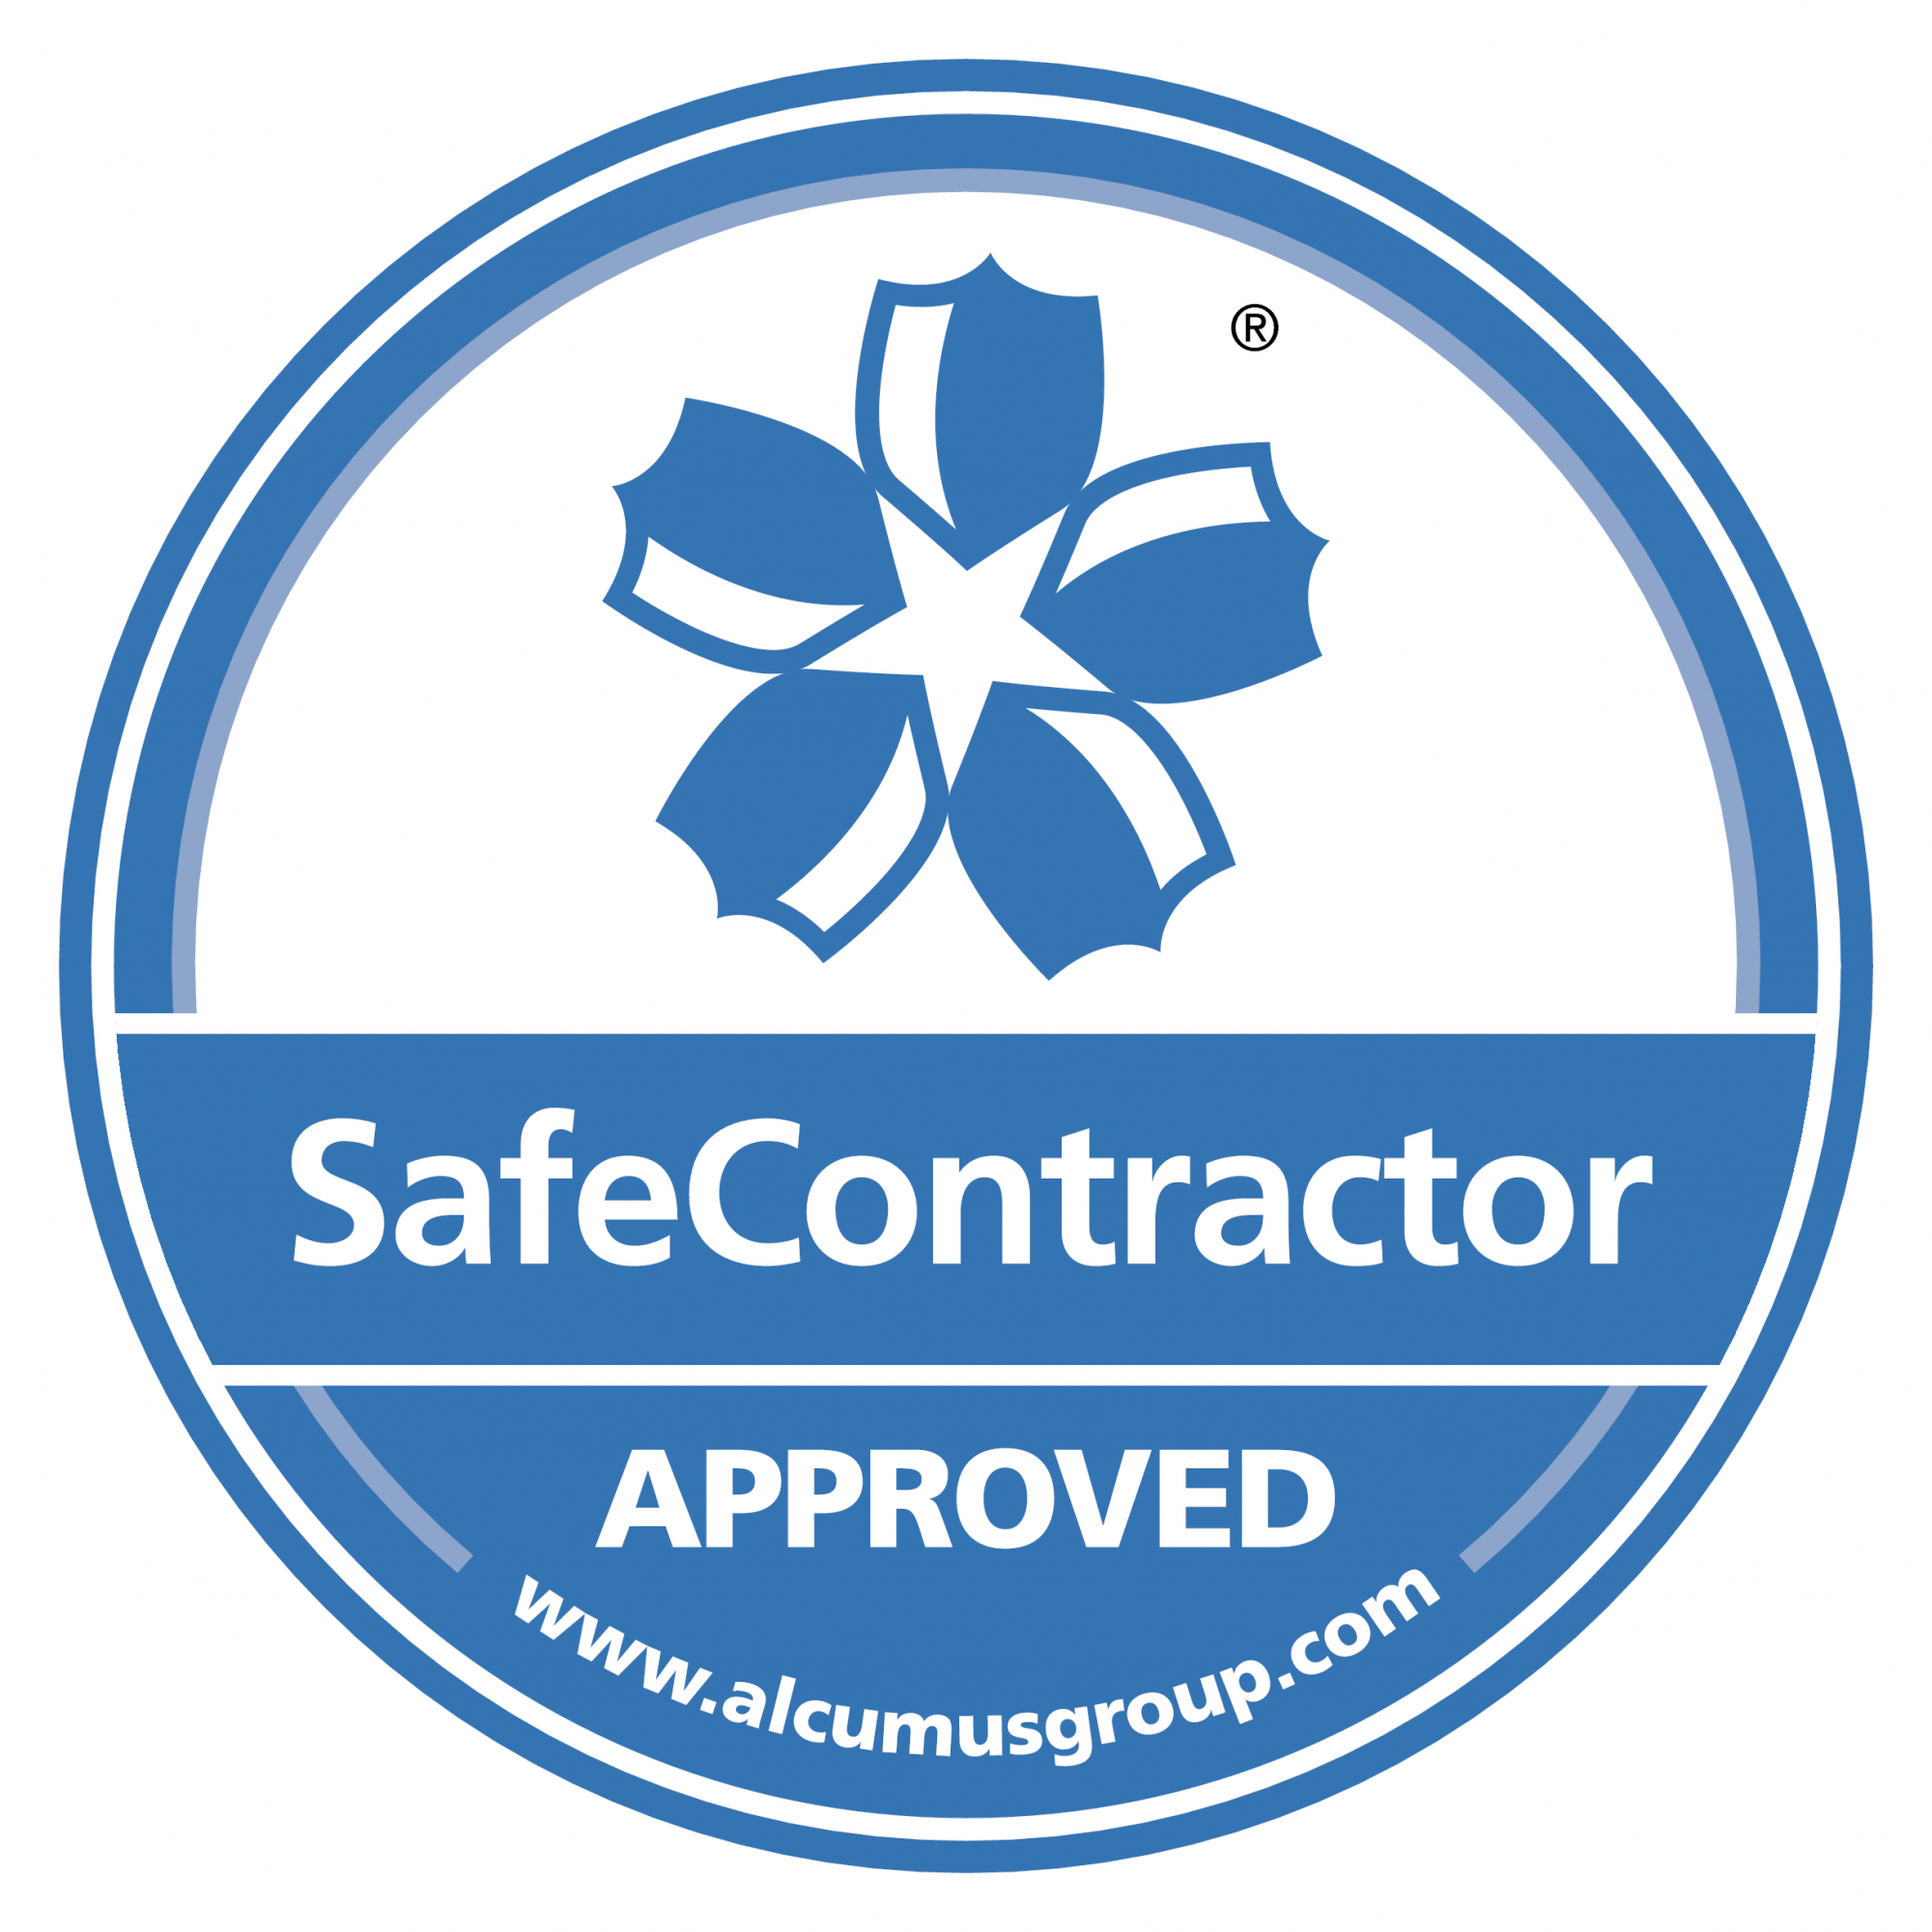 SafeContractor Accreditation Sticker CS6